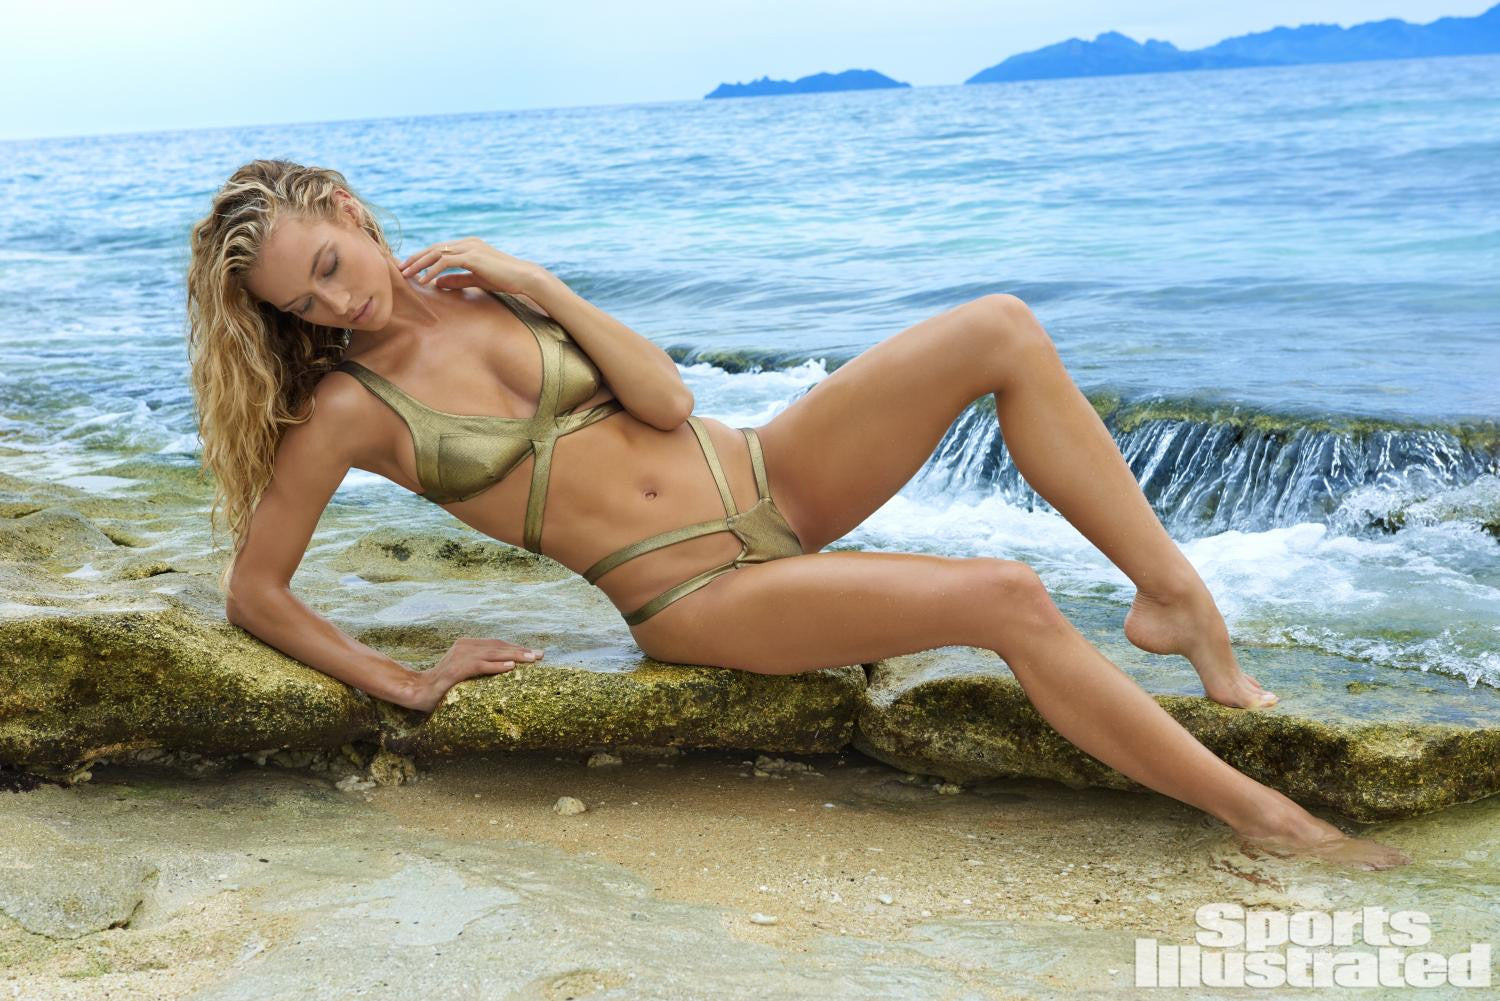 SI.com featuring model Hannah Ferguson wearing Monica Hansen Beachwear